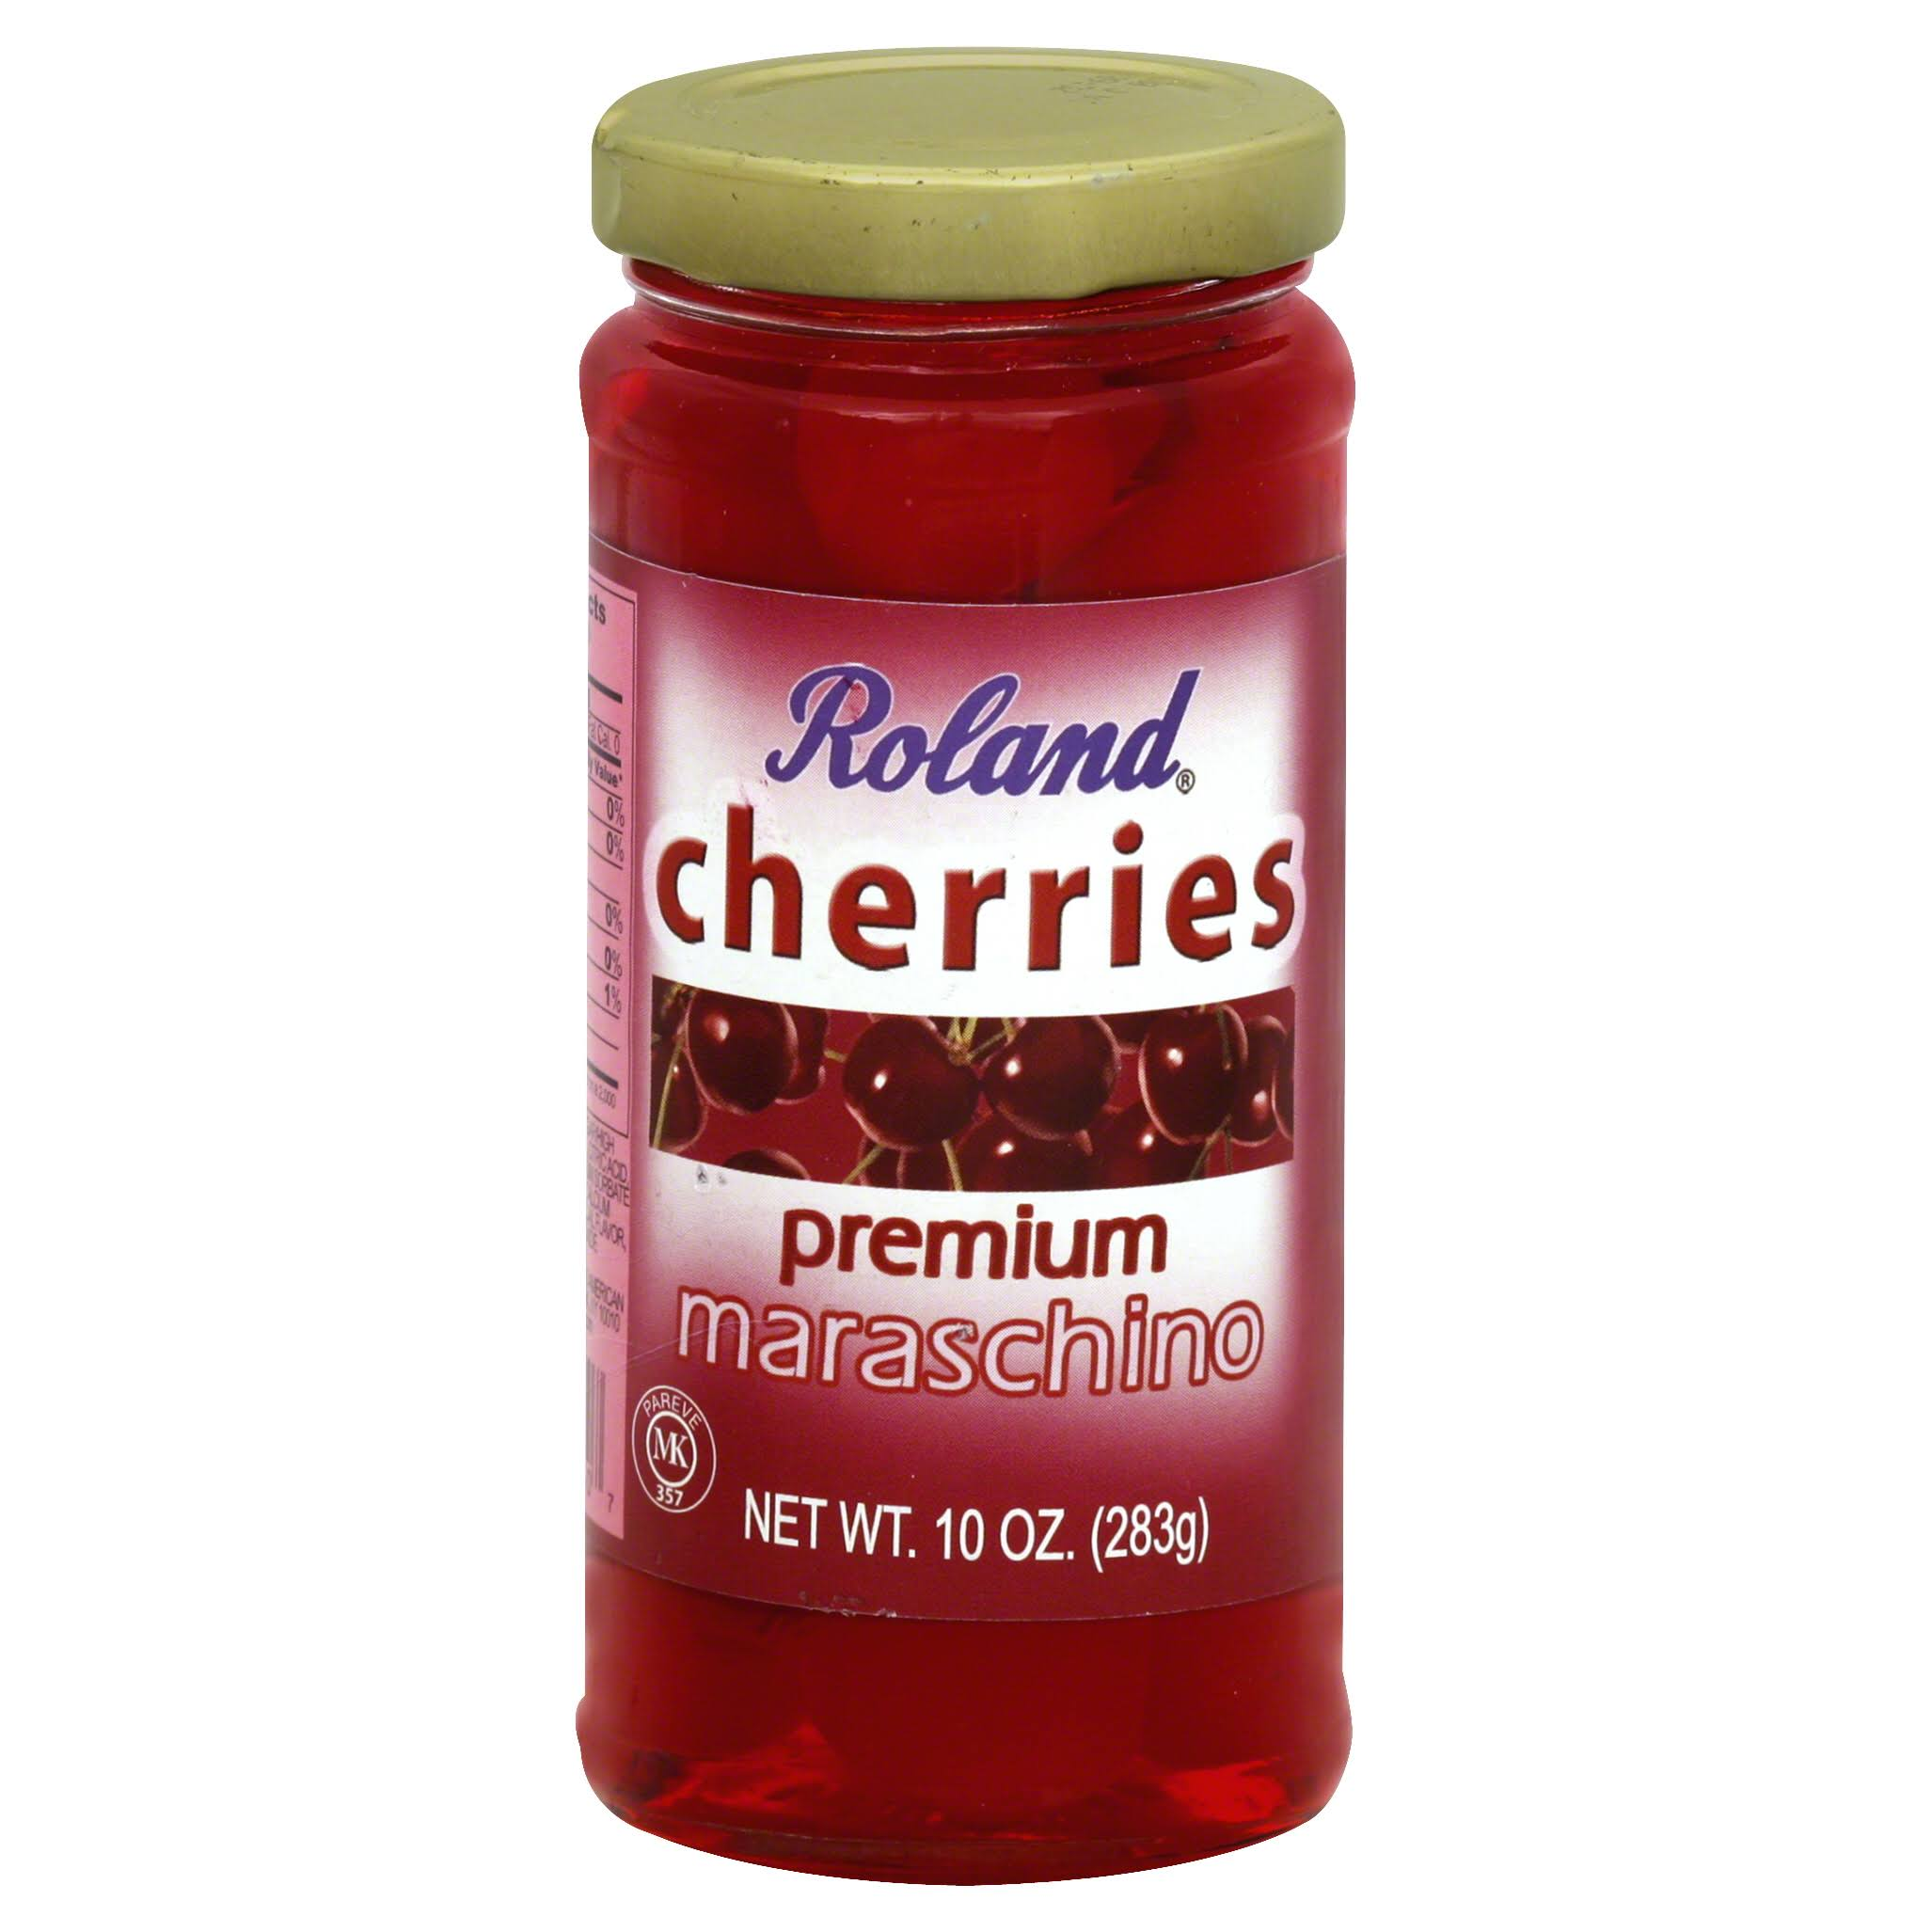 Roland Cherries, Maraschino - 10 oz